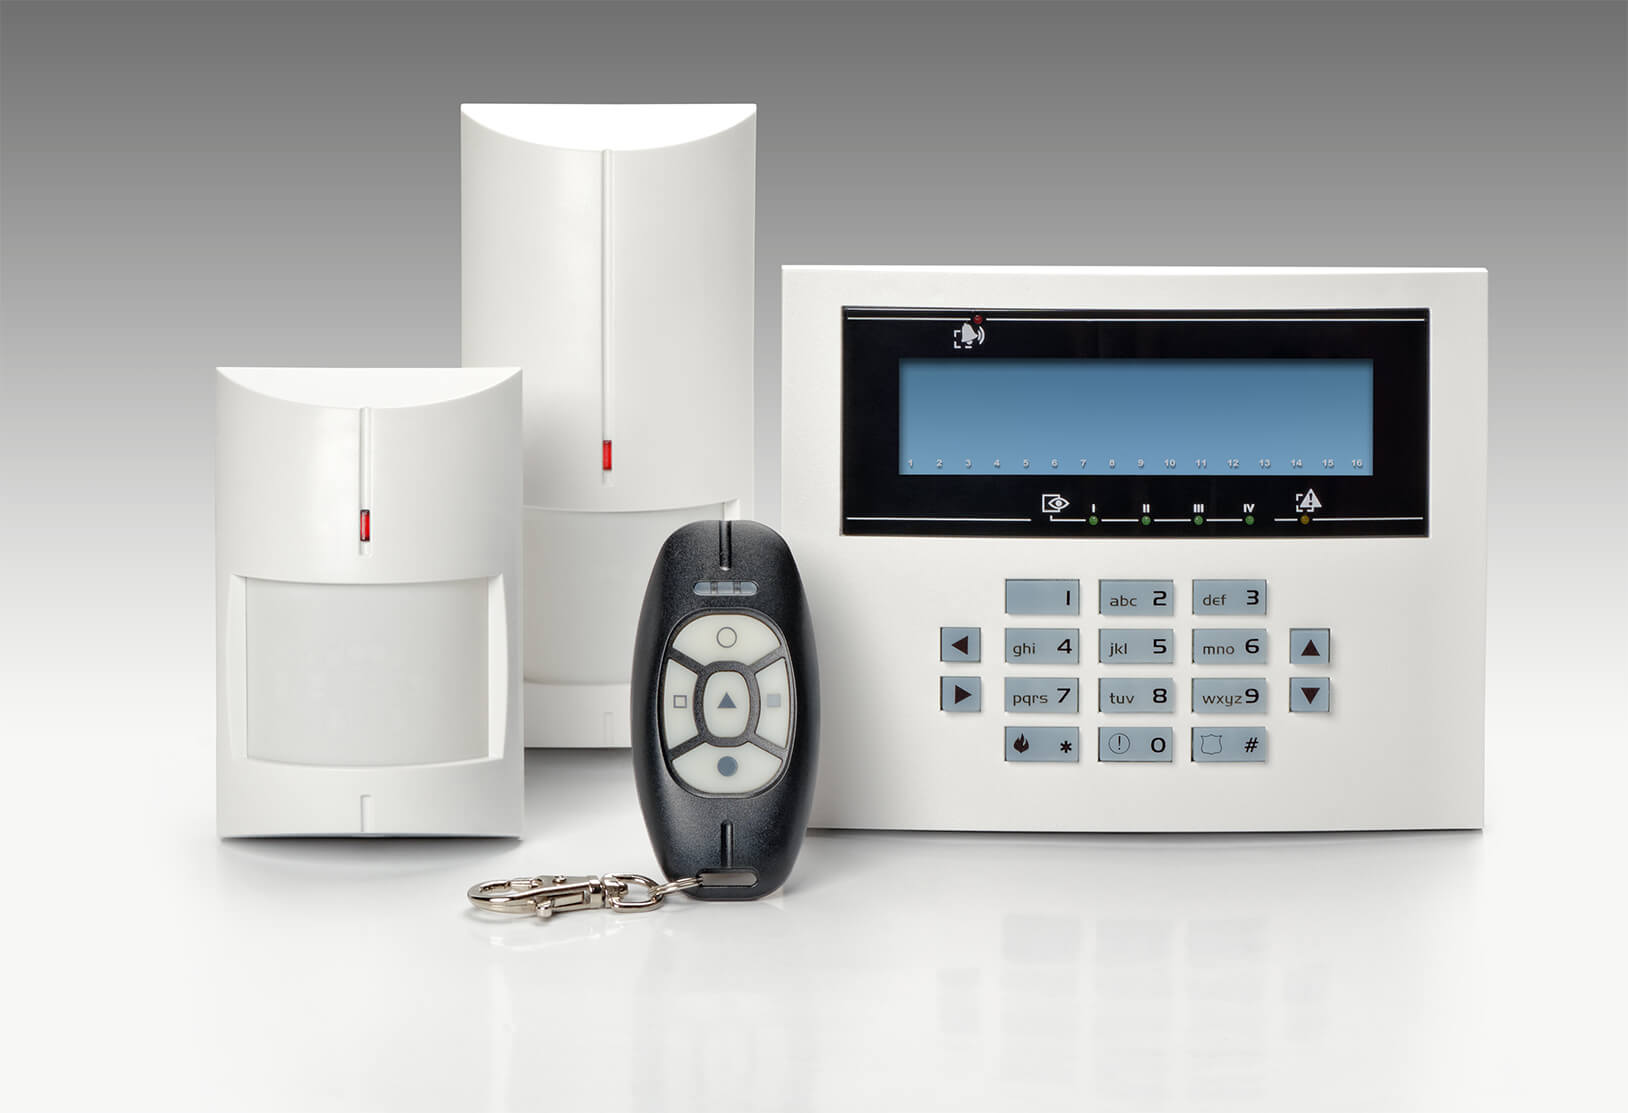 Burglar Alarms Repair in Greenwich SE7 - Local Greenwich SE7 alarm engineers.Call 02078872244 - See cost/price for burglar alarm repair and book your alarm engineer. No Hidden charges,No Contracts, Book as you need.Engineers on demand.All alarm makes repaired.Same day service ability.